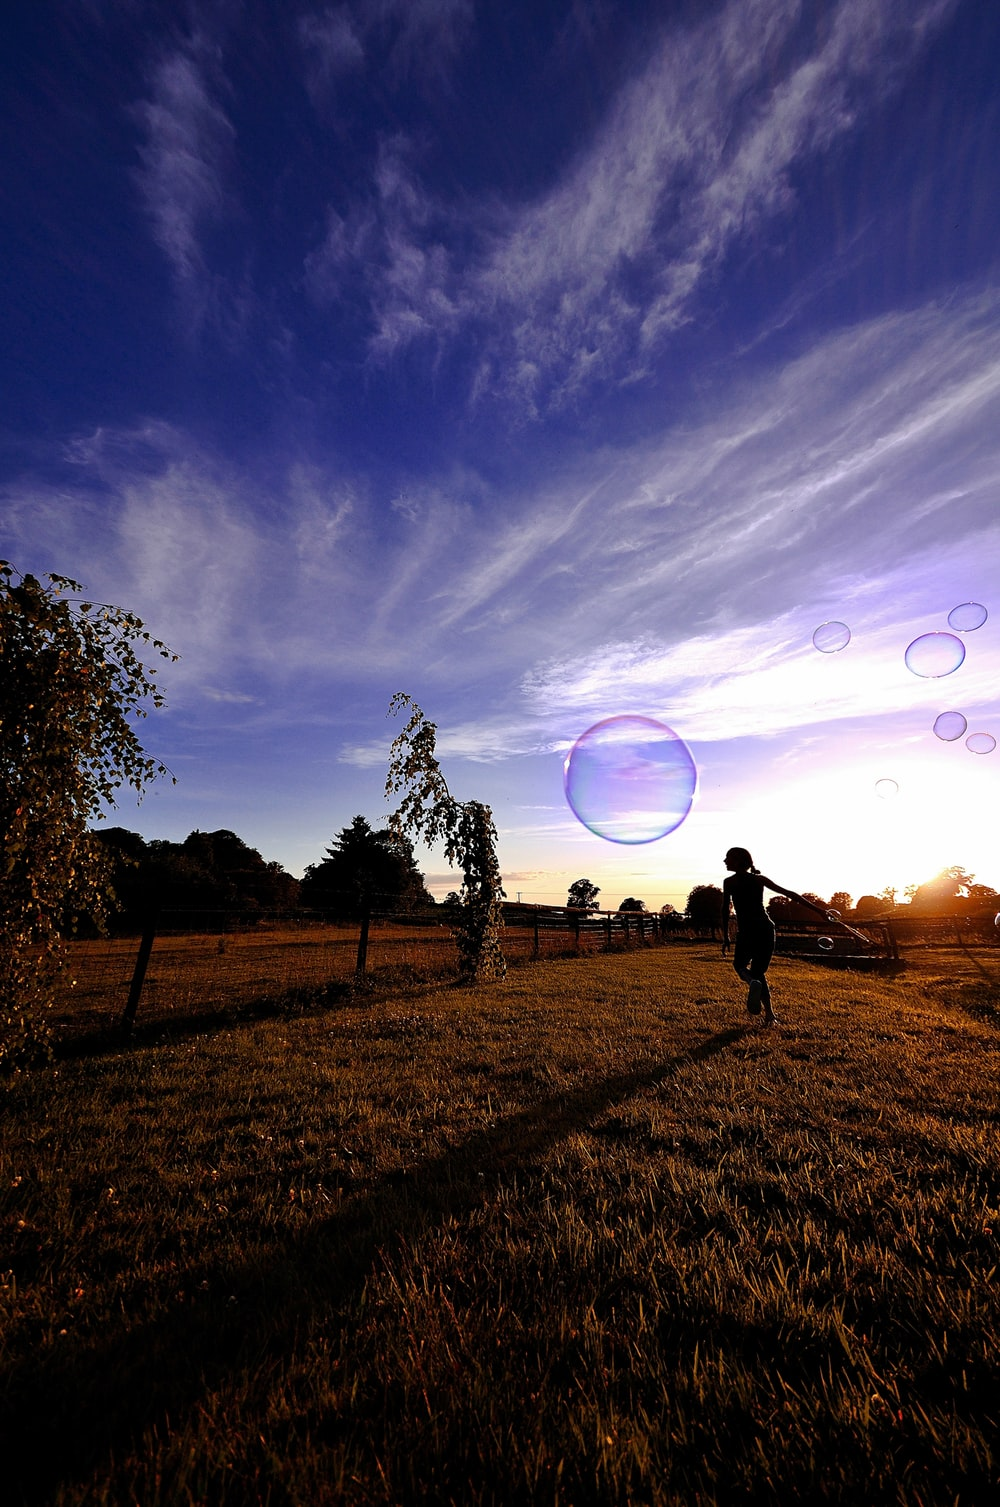 silhouette of 2 people standing on grass field under blue sky with stars during night time